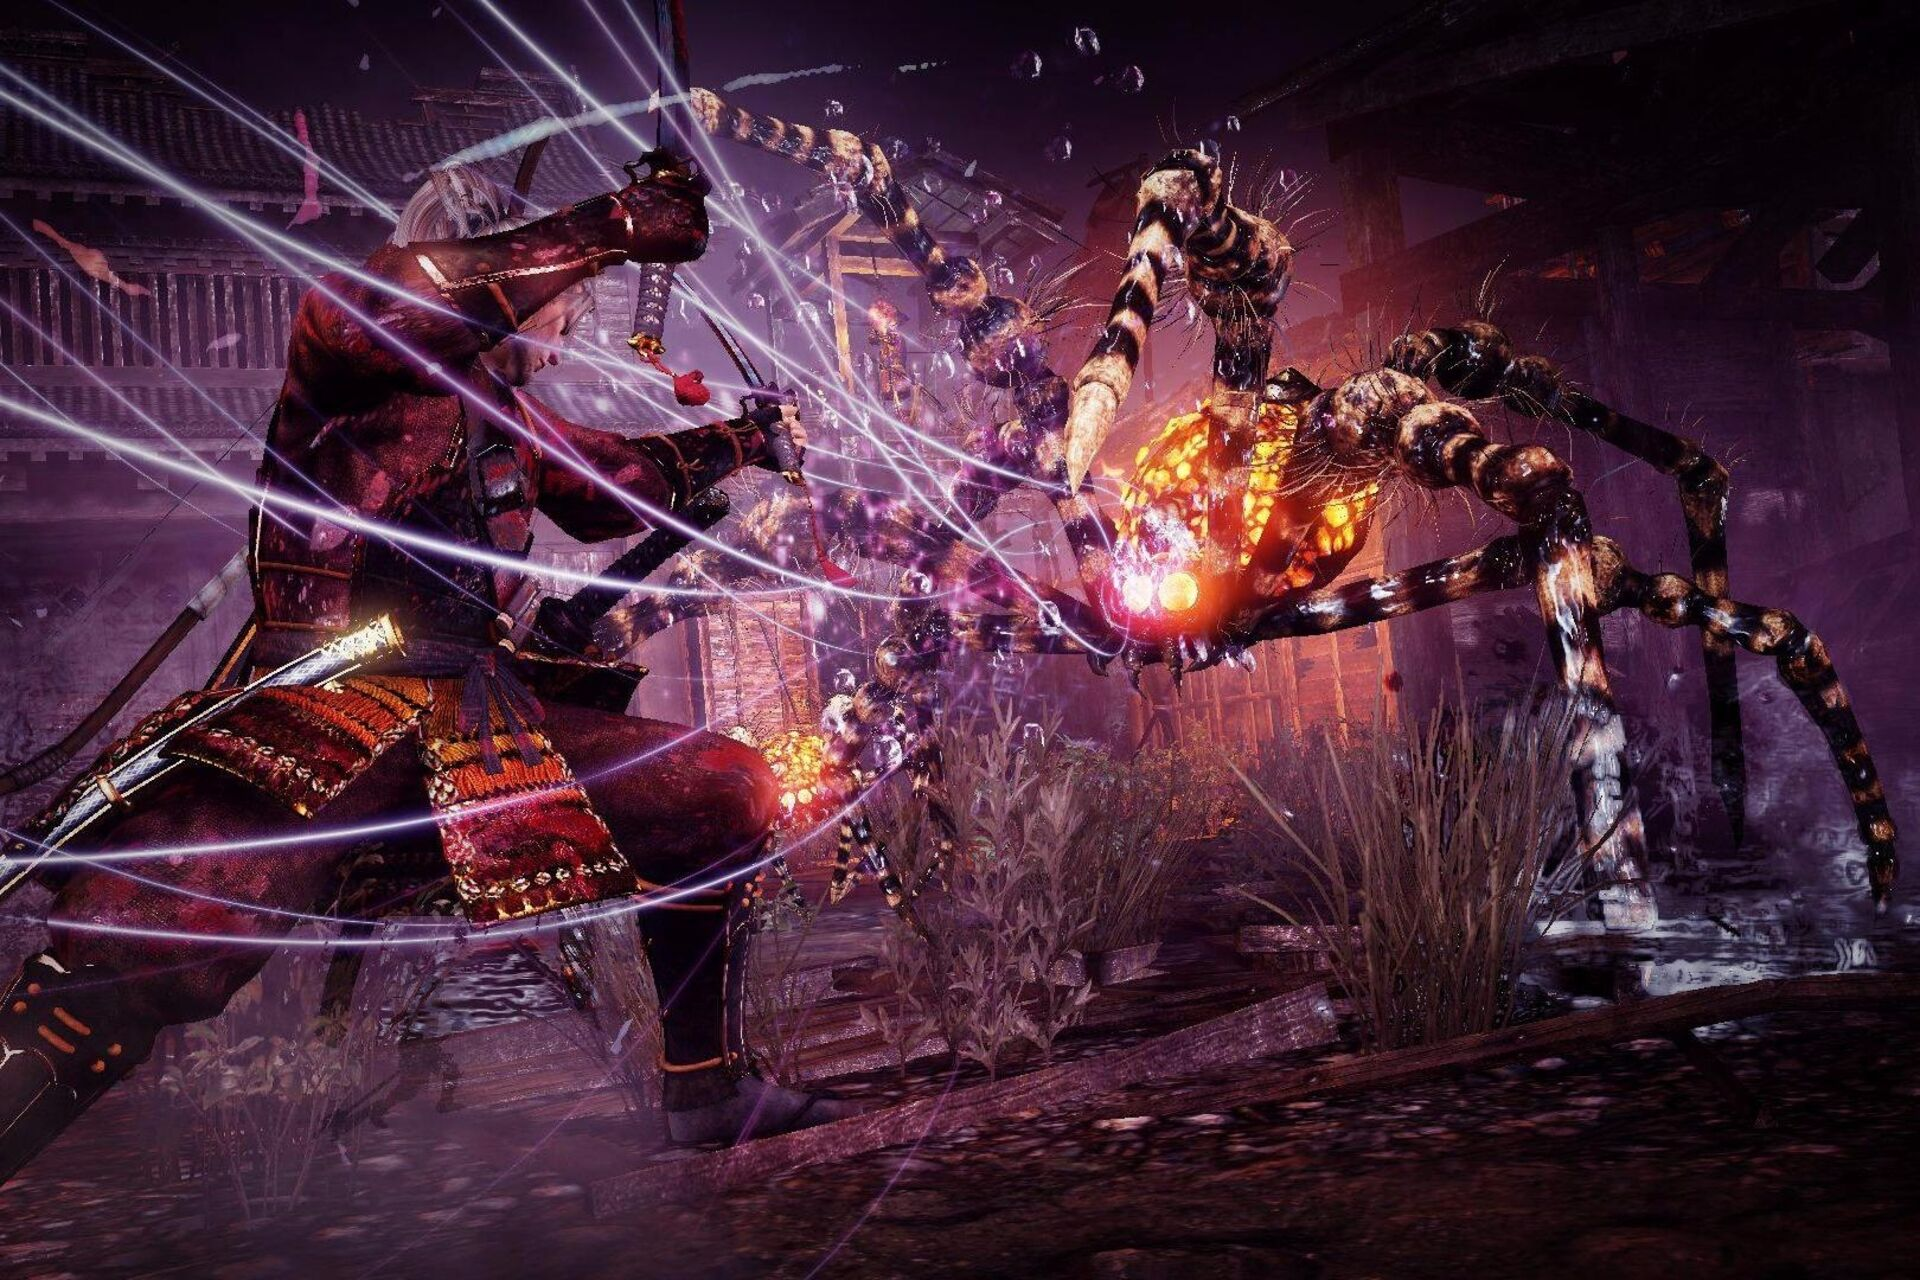 Warning: Nioh glitch can delete save data upon starting a new